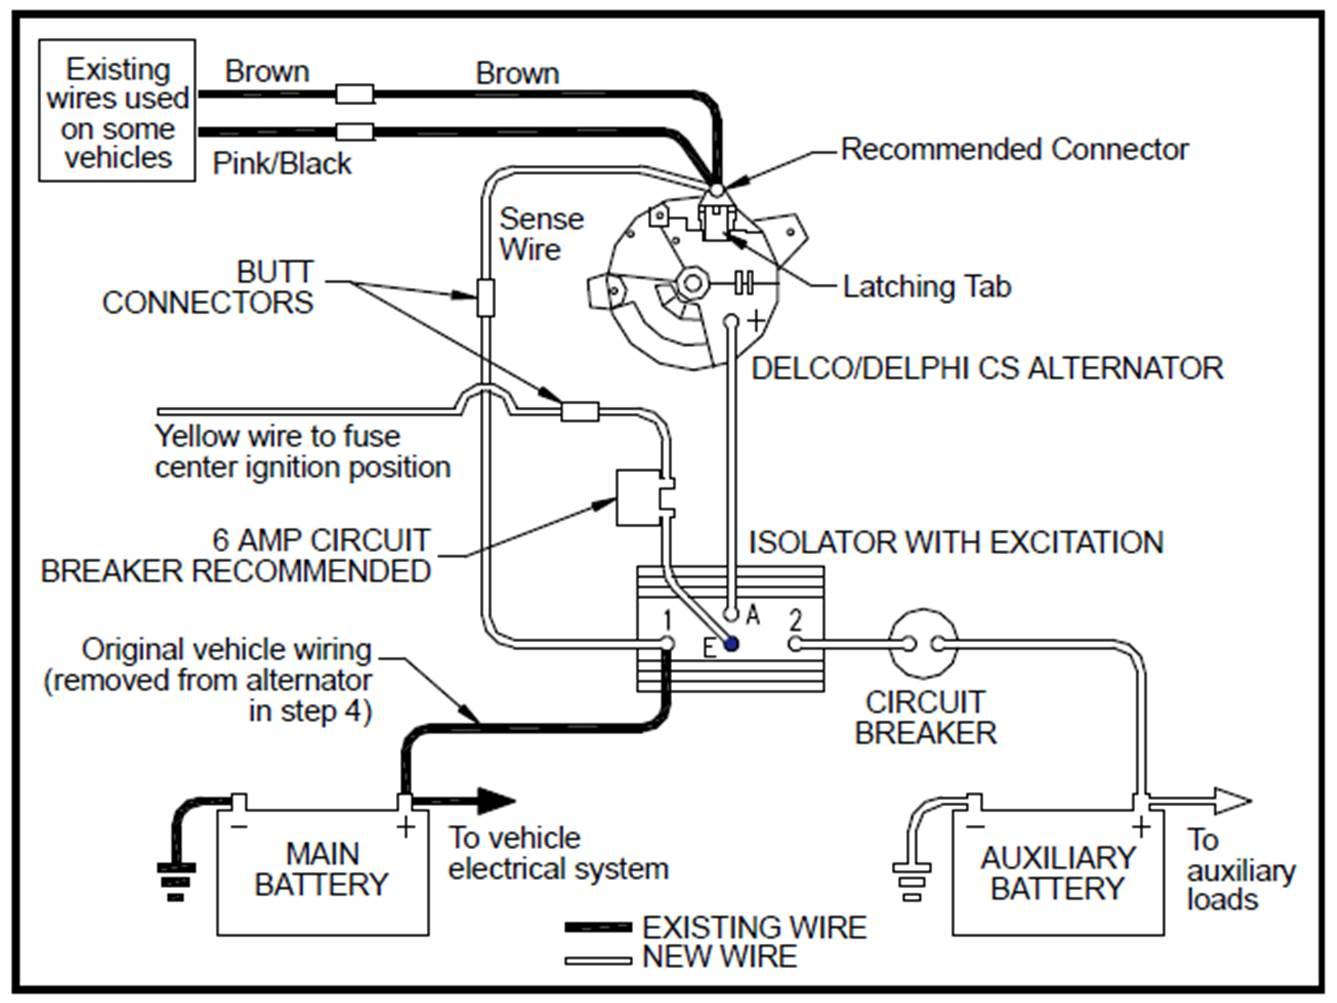 1381154 thesamba com vanagon view topic simplest auxiliary battery vanagon auxiliary battery wiring diagram at aneh.co